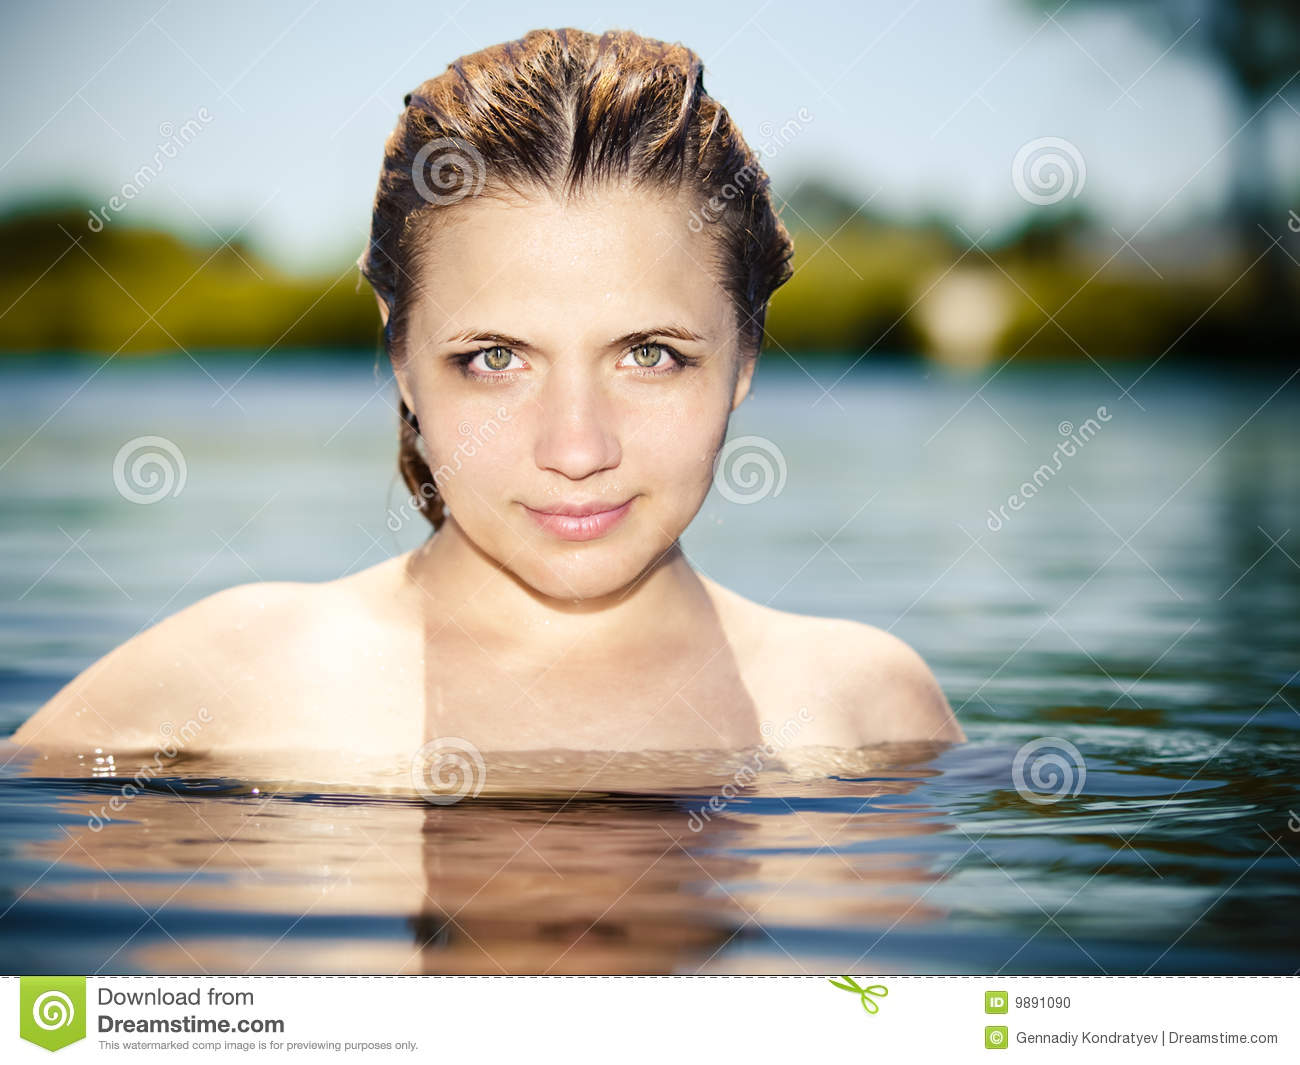 Young girls naked on water